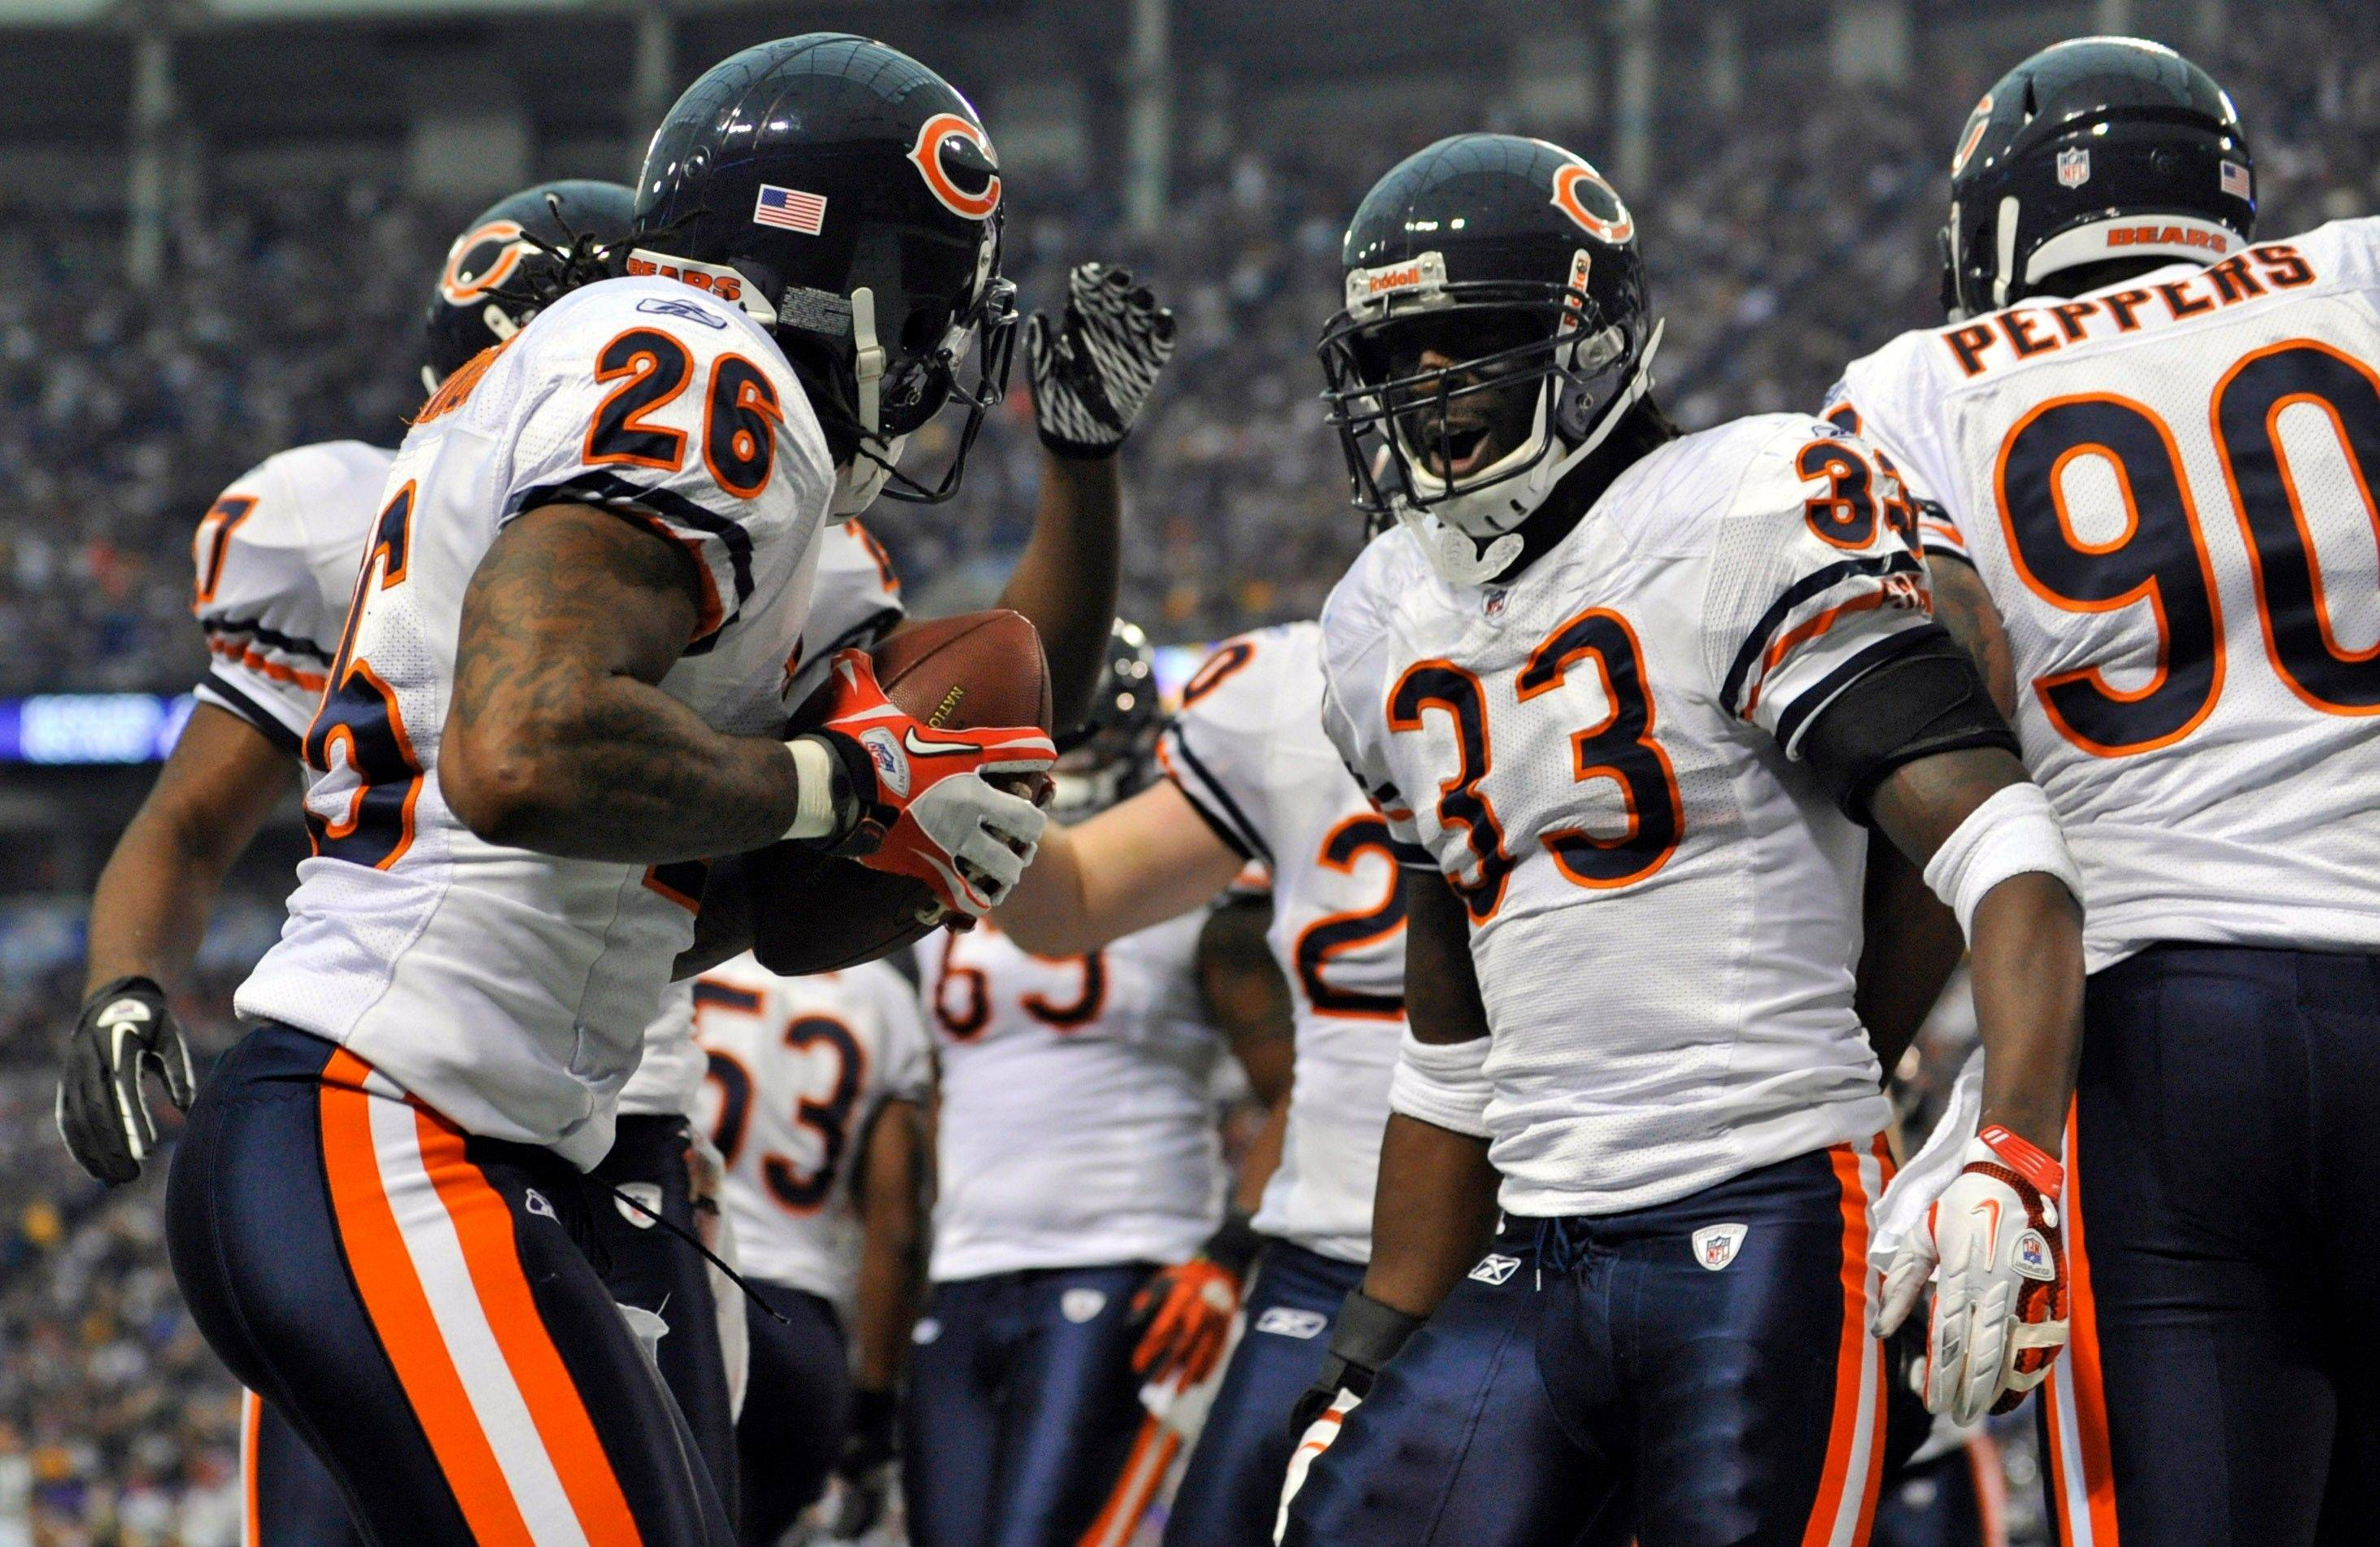 Chicago Bears cornerback Charles Tillman celebrates his 22-yard interception return with cornerback Tim Jennings in the first half.